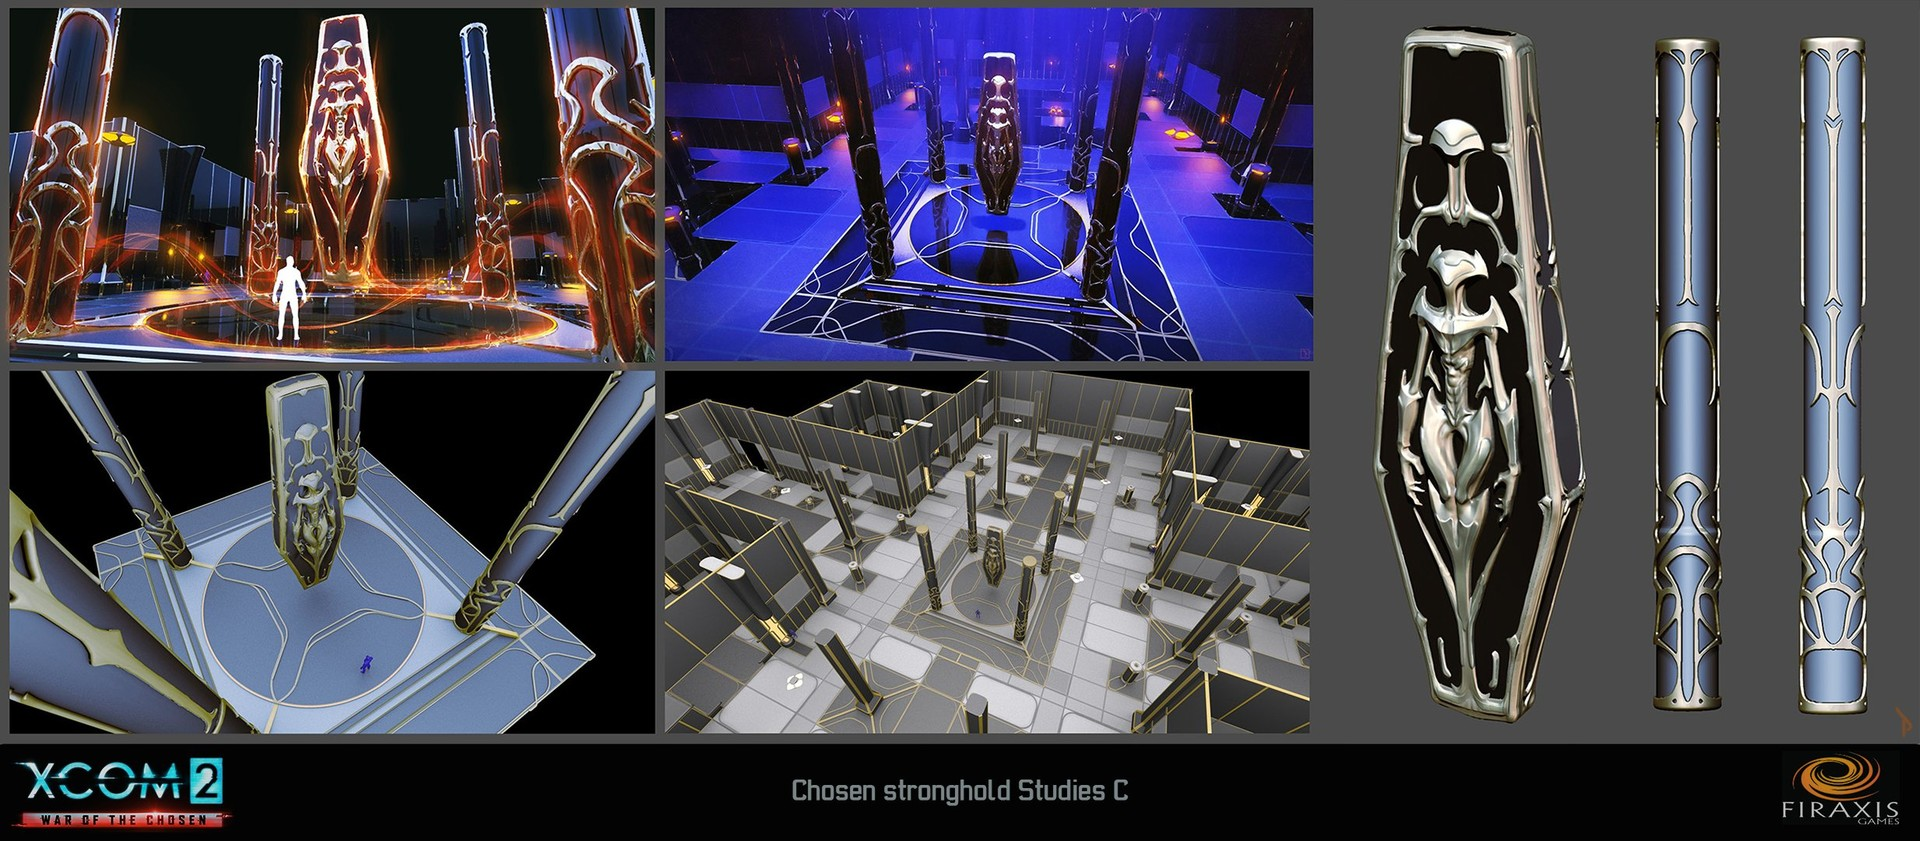 Initial Chosen Stronghold 3D conceptualization